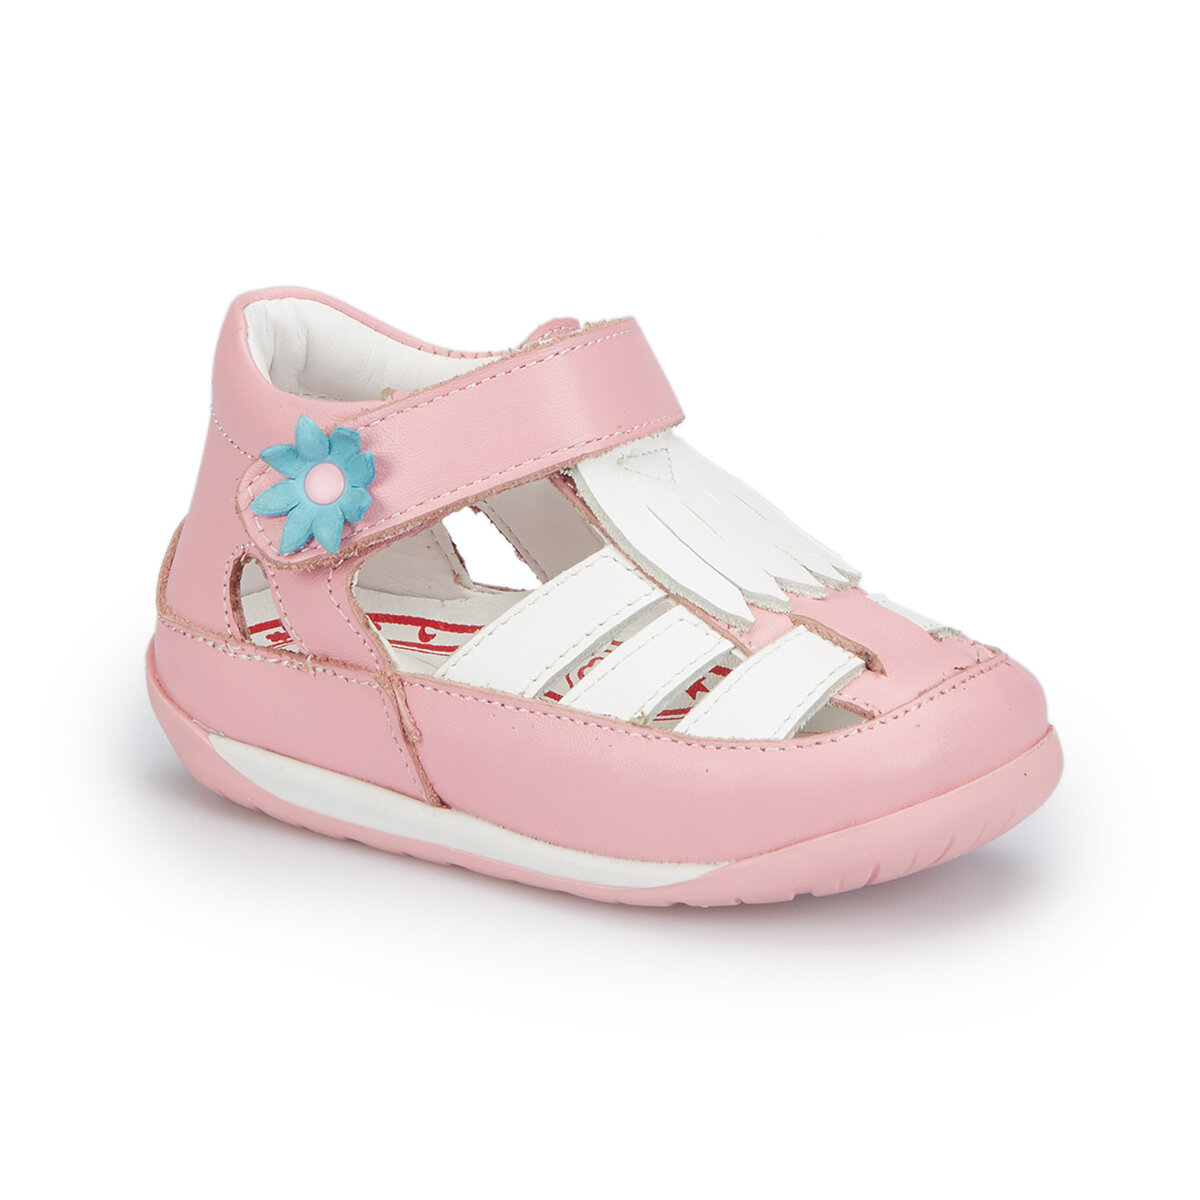 FLO 81.510015.I Pink Female Child Sneaker Shoes Polaris